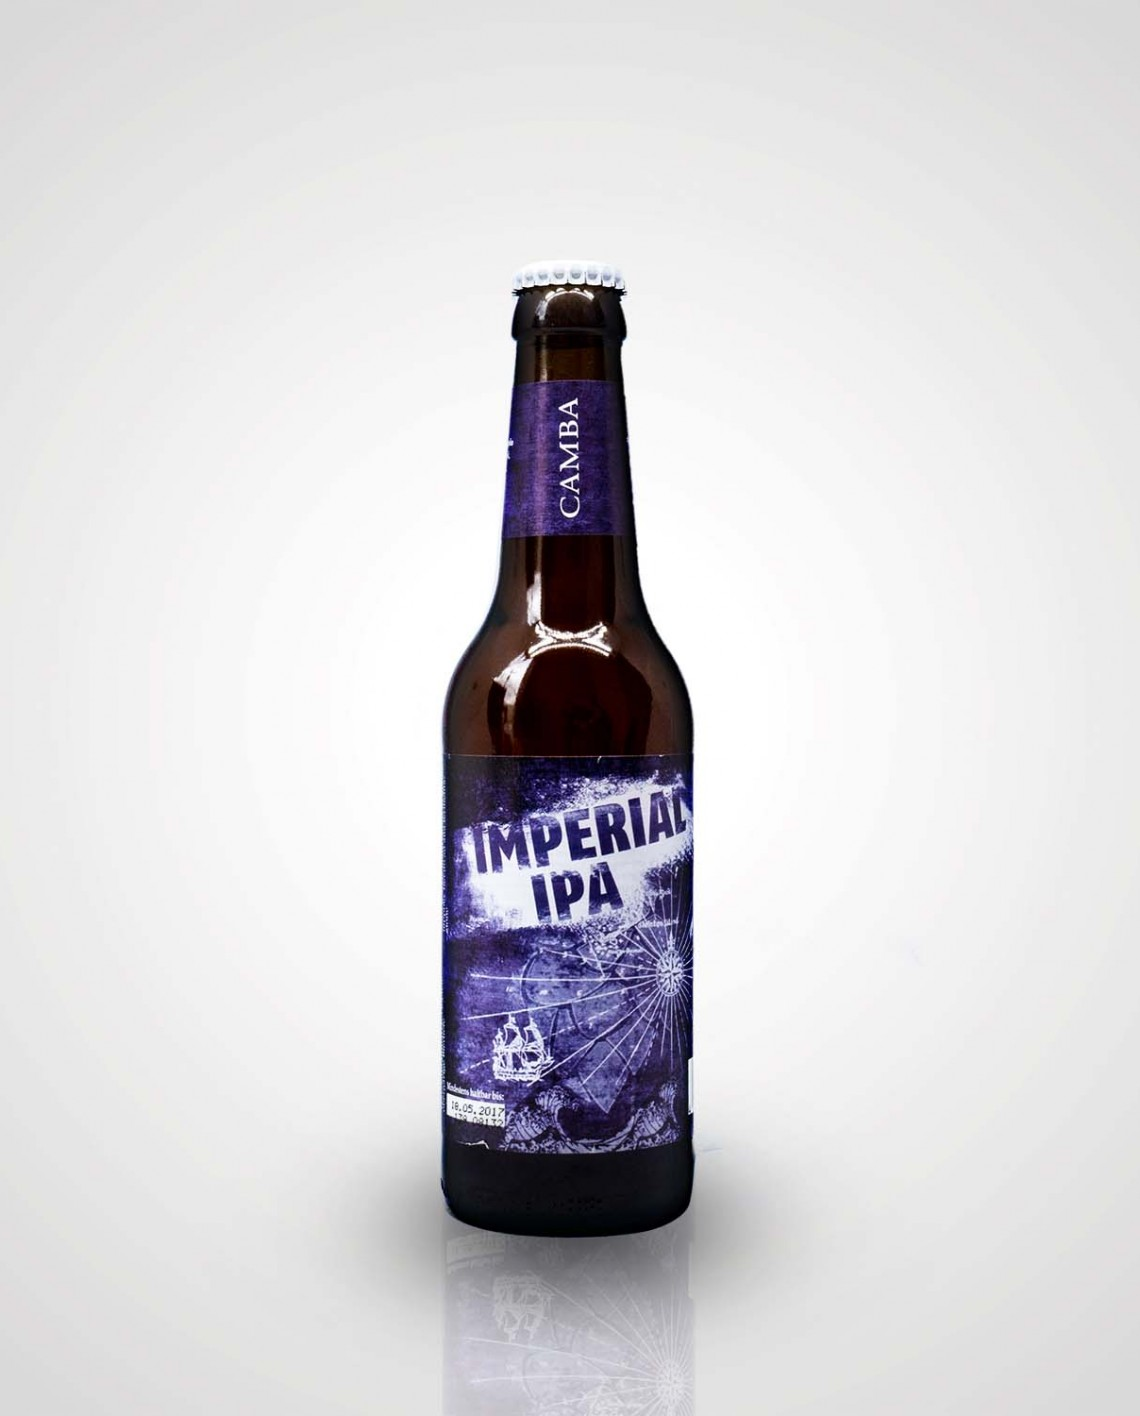 Camba imperial ipa craft beer online shop by craftbeer for Craft beer online shop